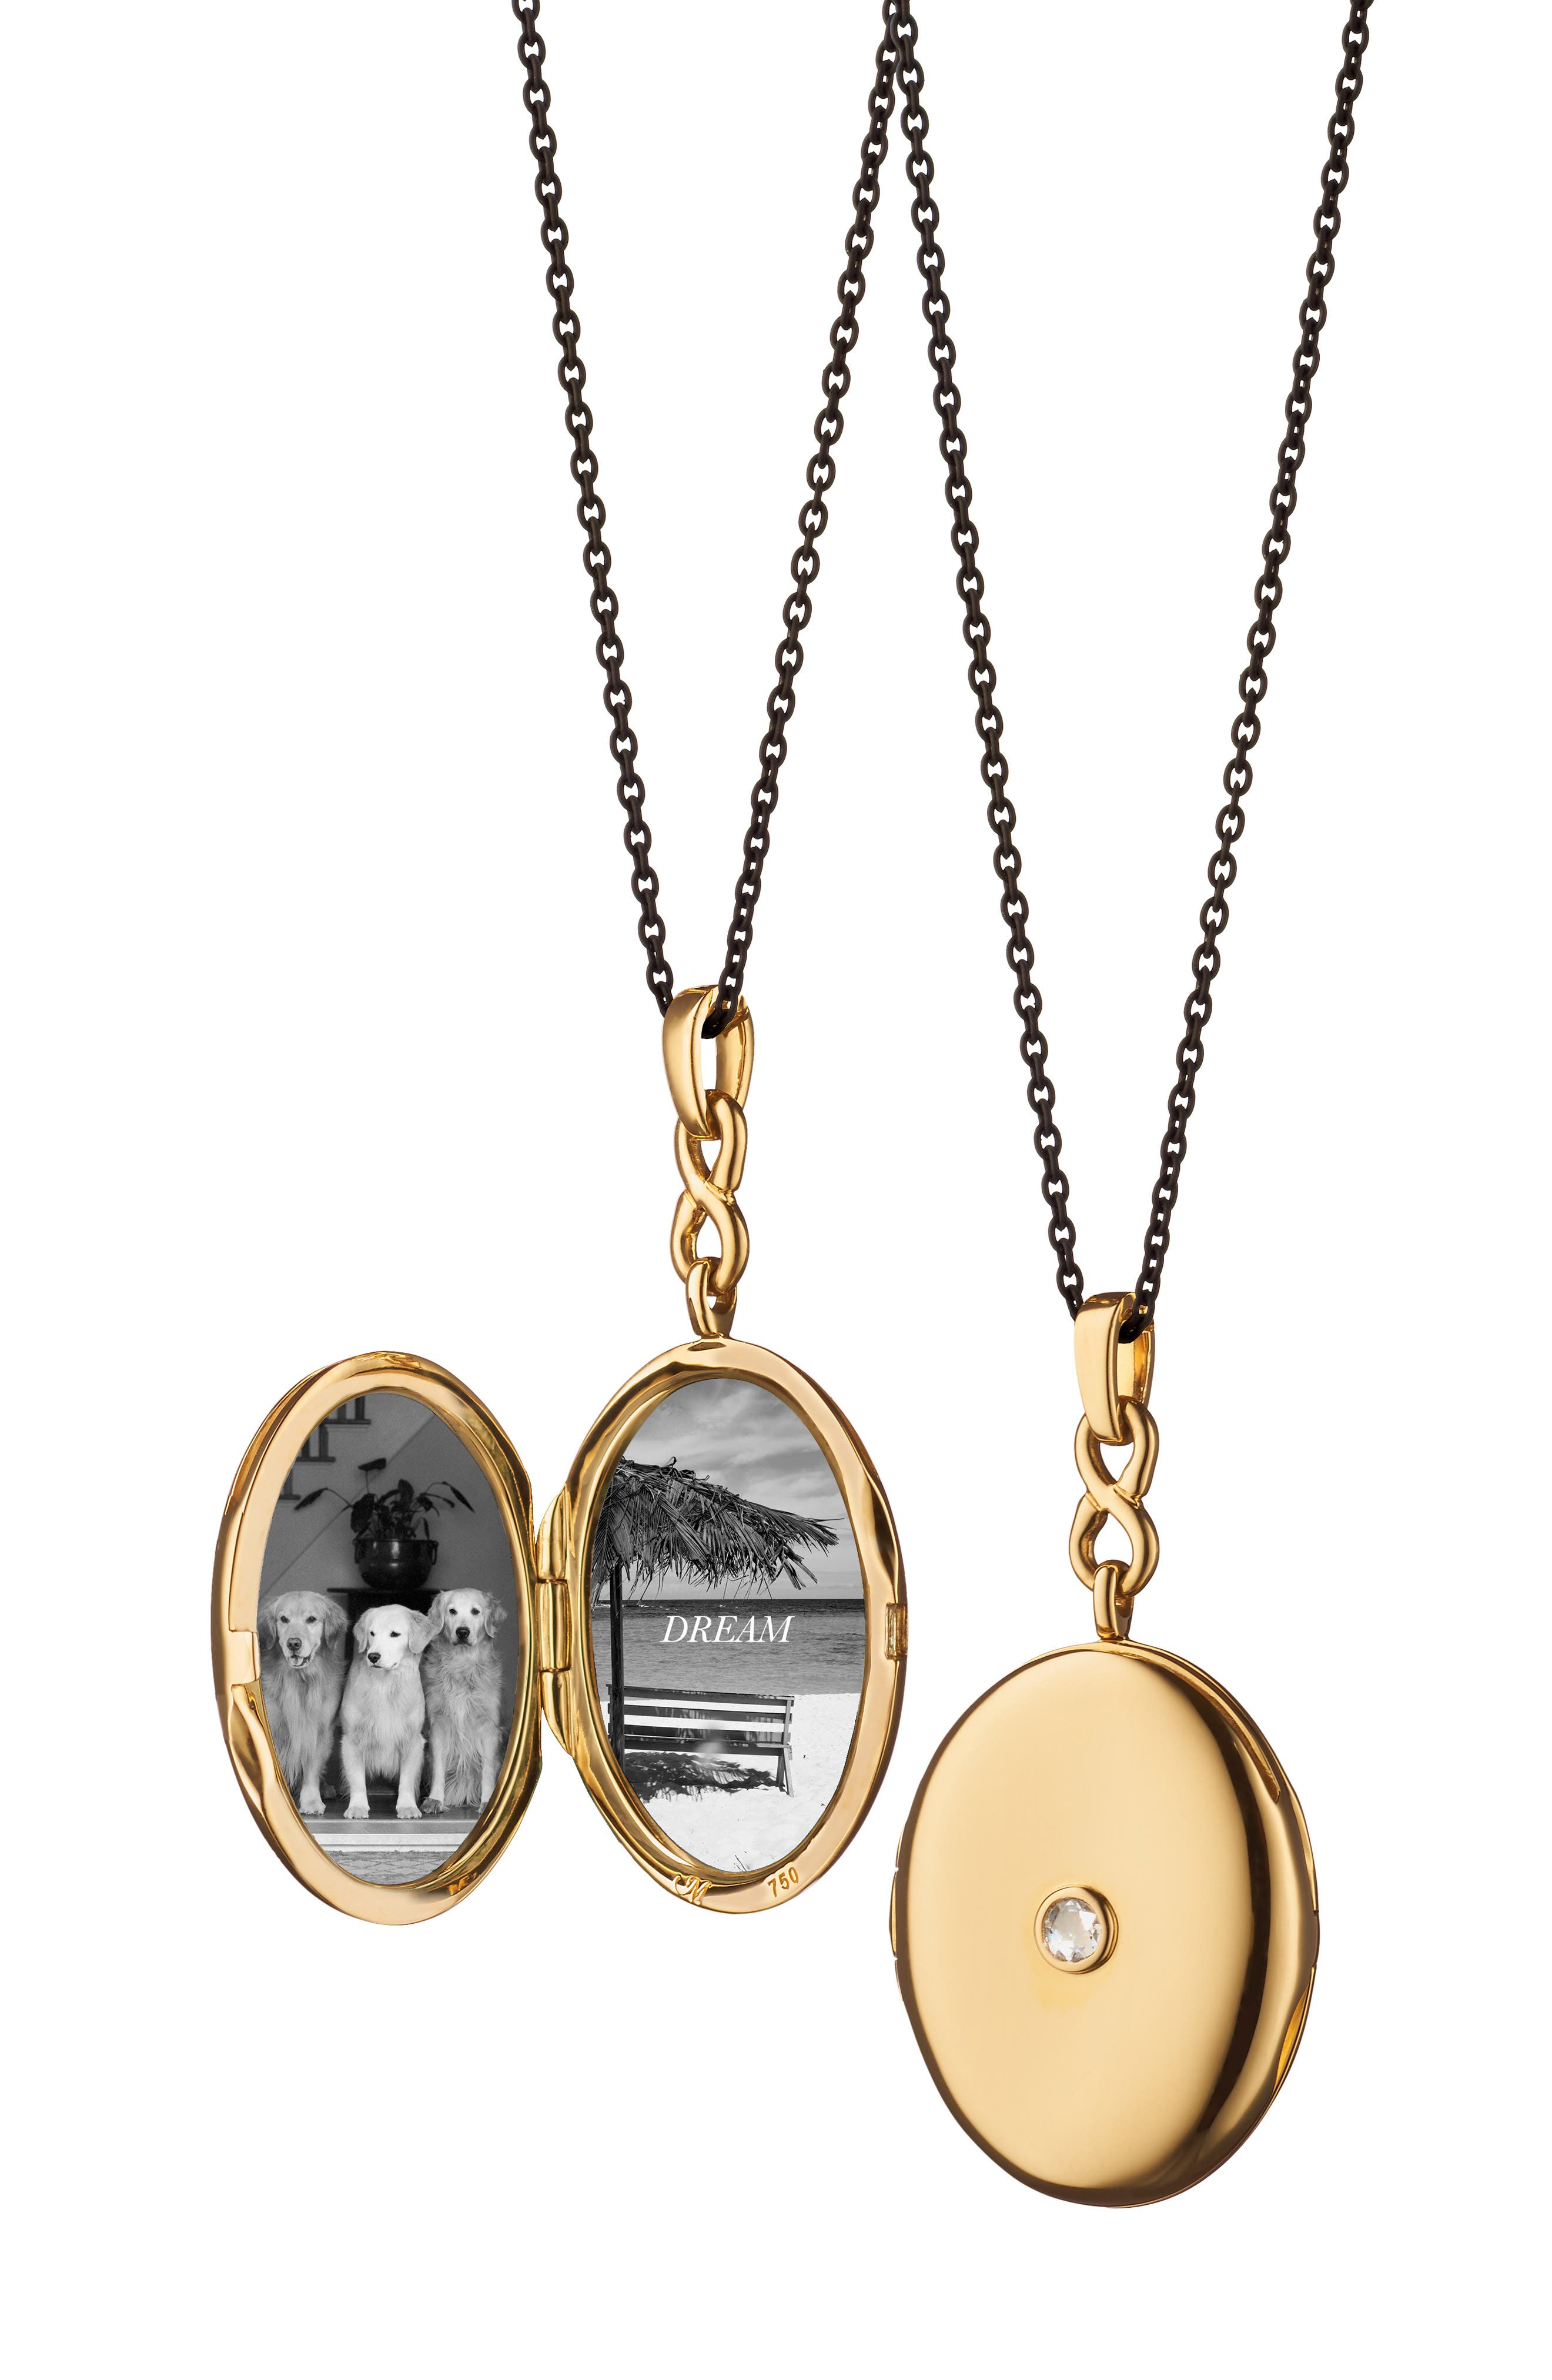 18K Gold Locket Necklace With Diamond Center in Yellow Gold